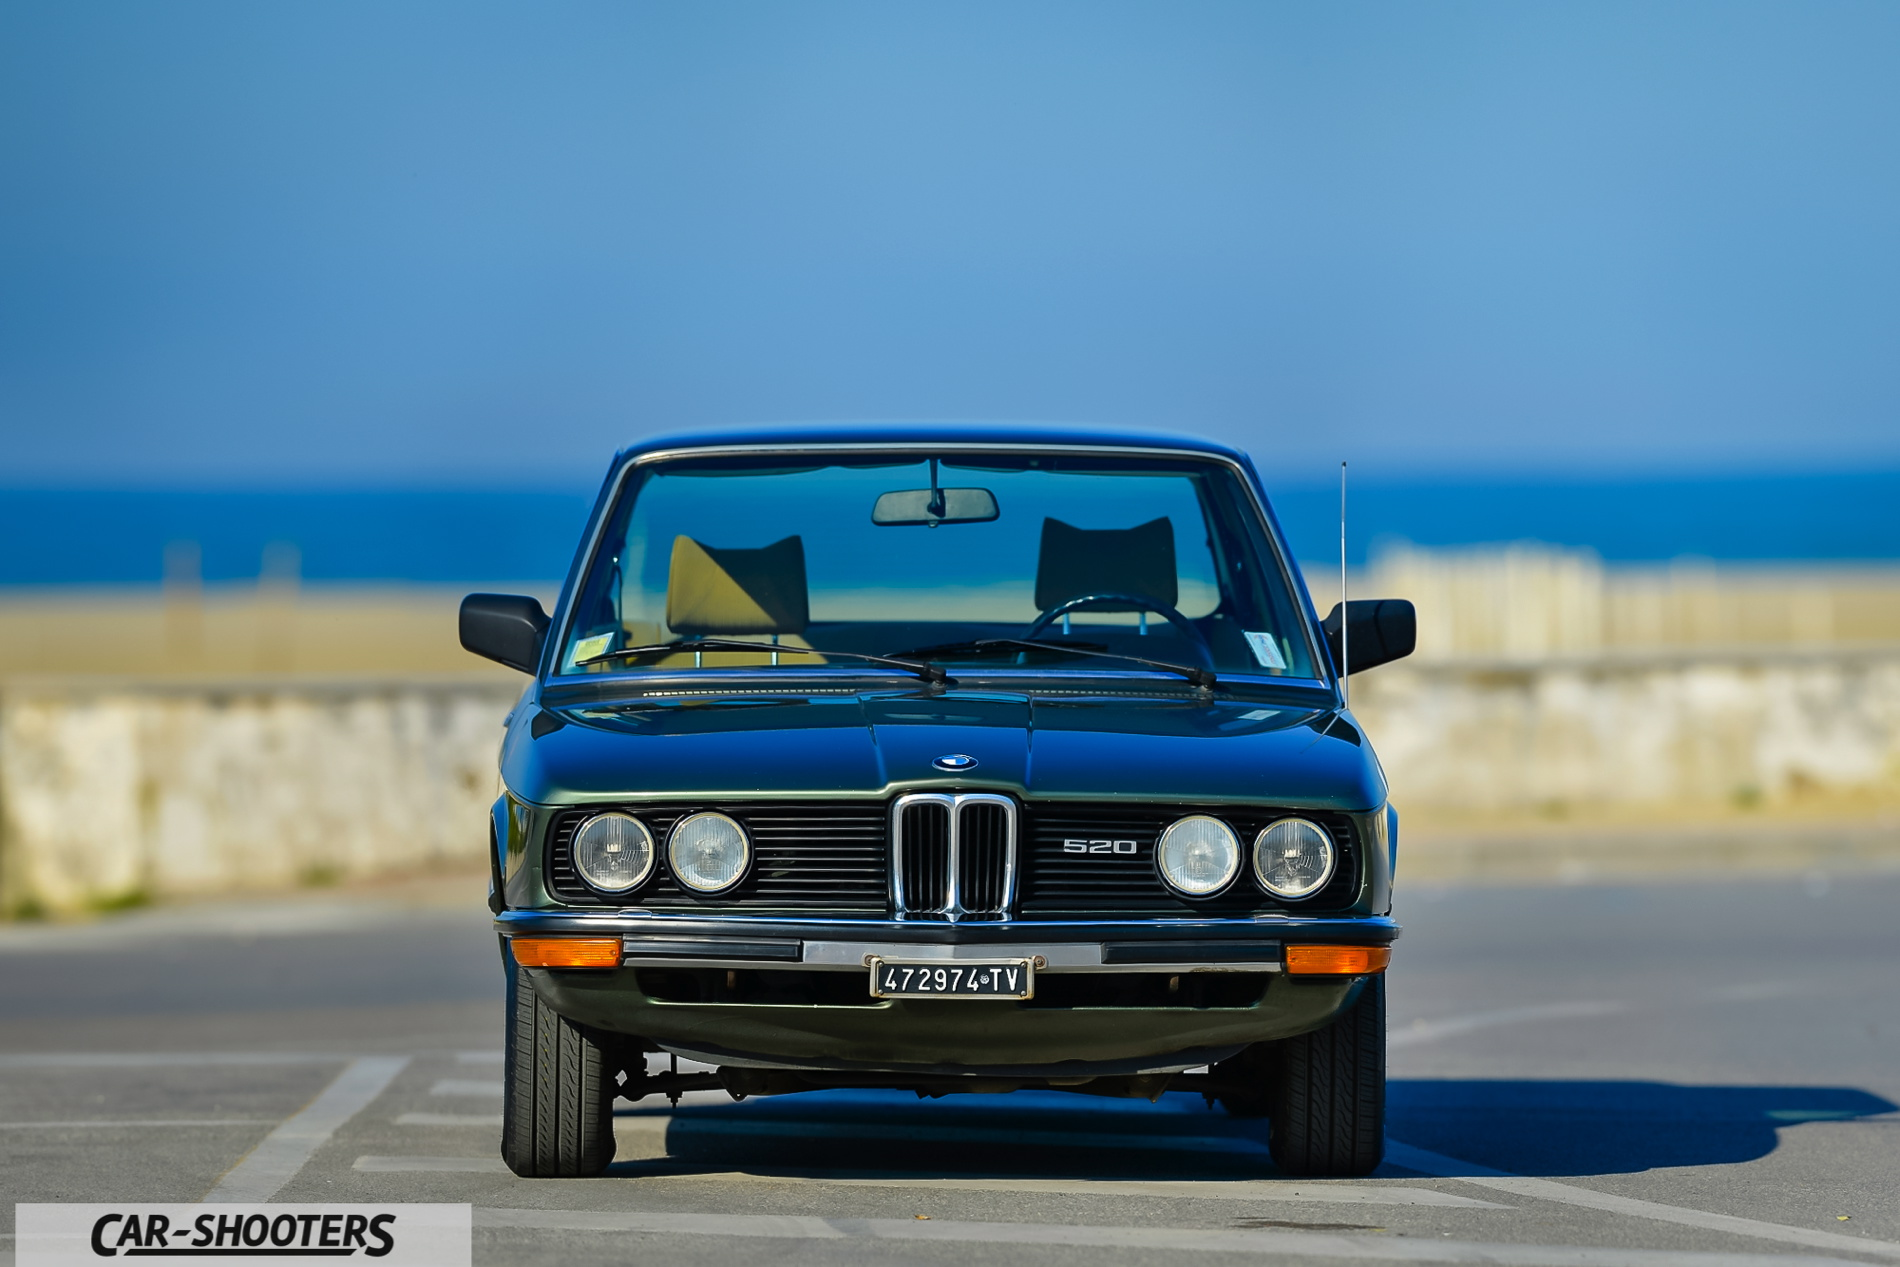 The Iconic E12 Bmw 5 Series Photoshoot